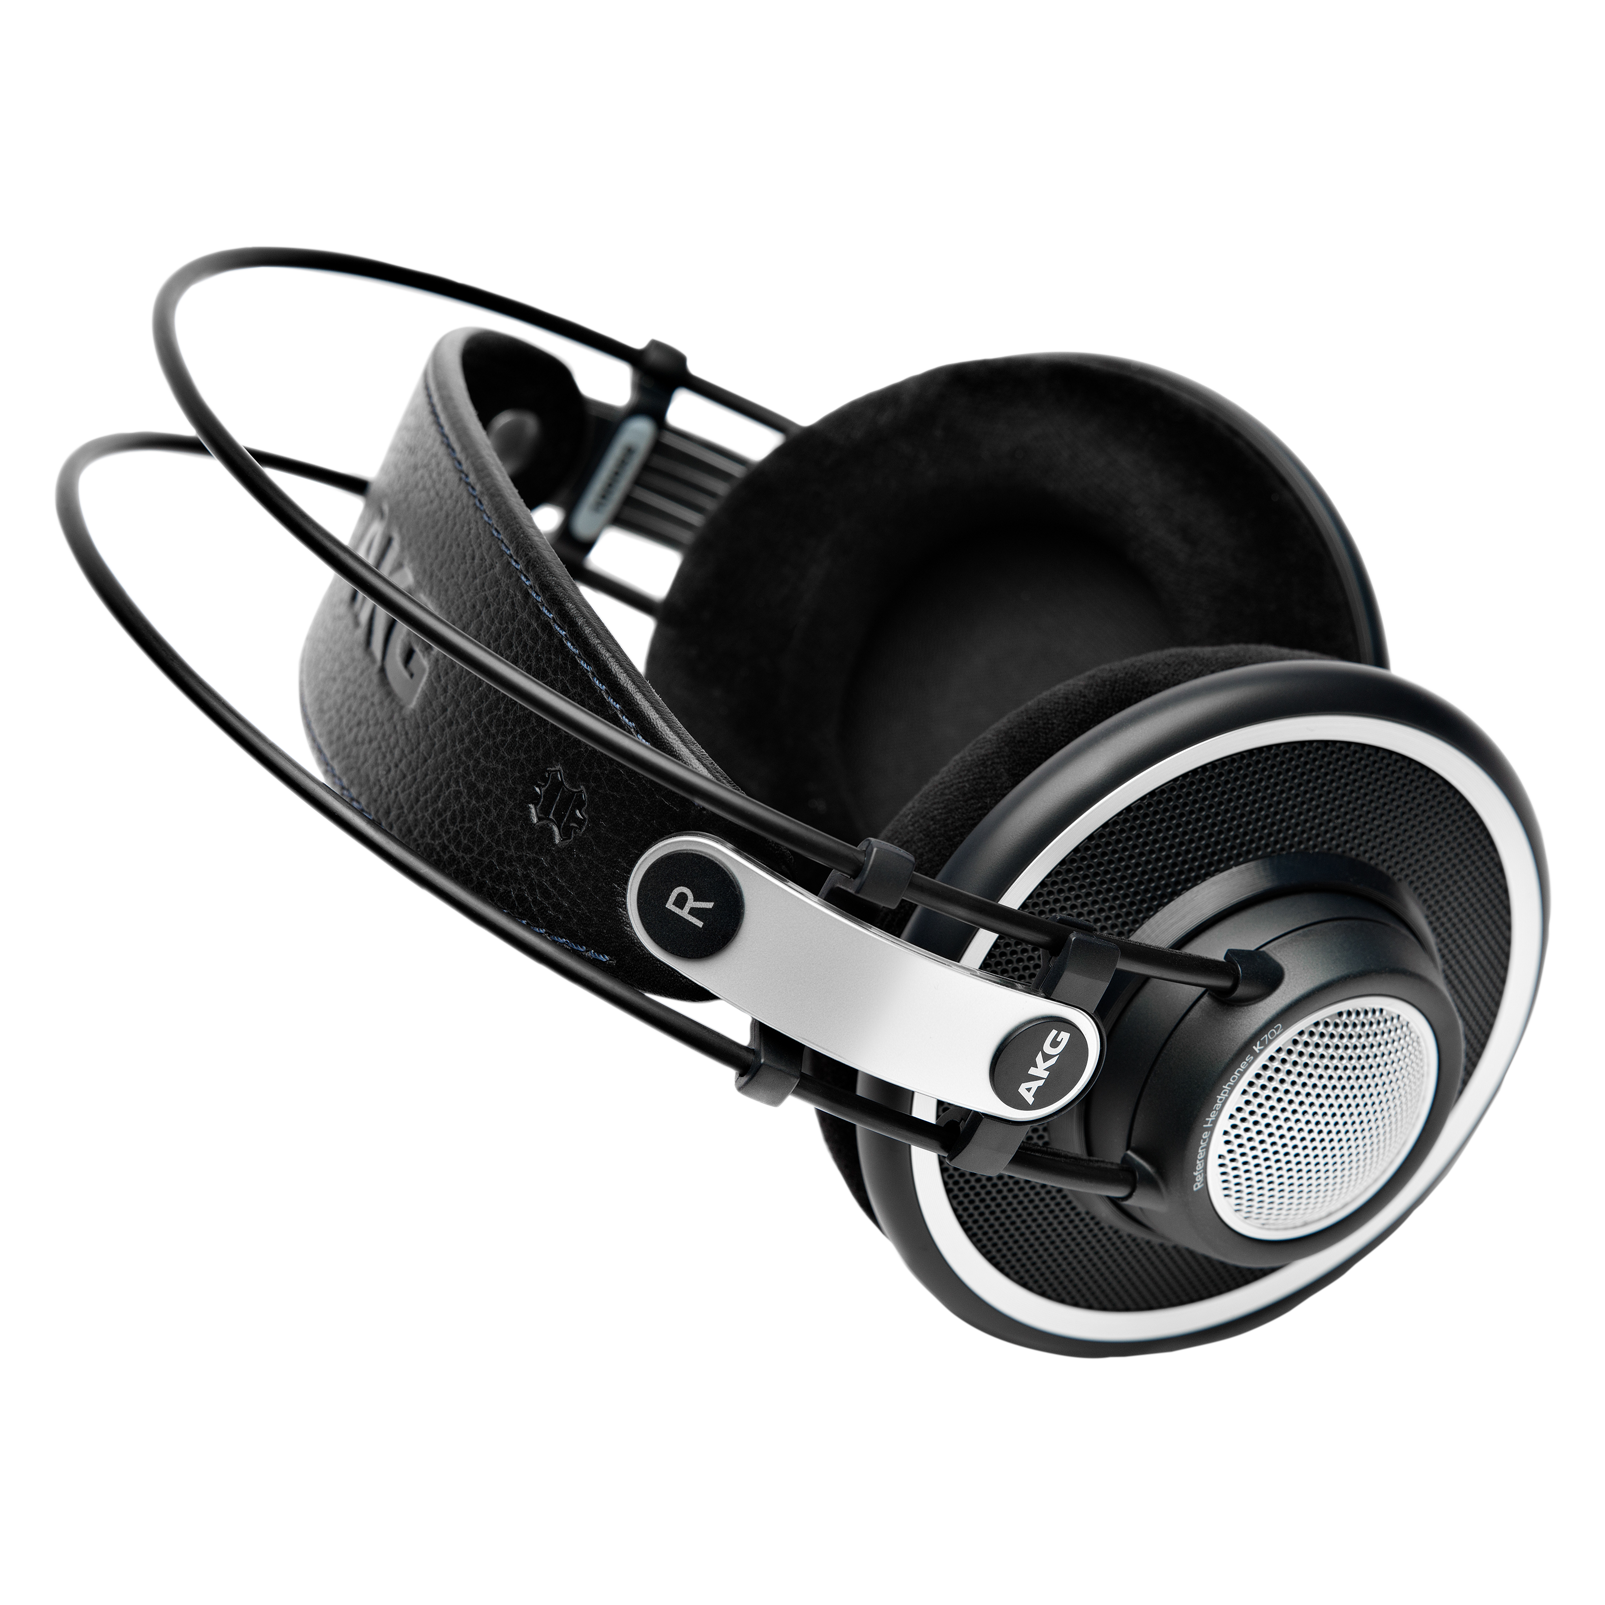 K702 - Black - Reference studio headphones - Detailshot 2